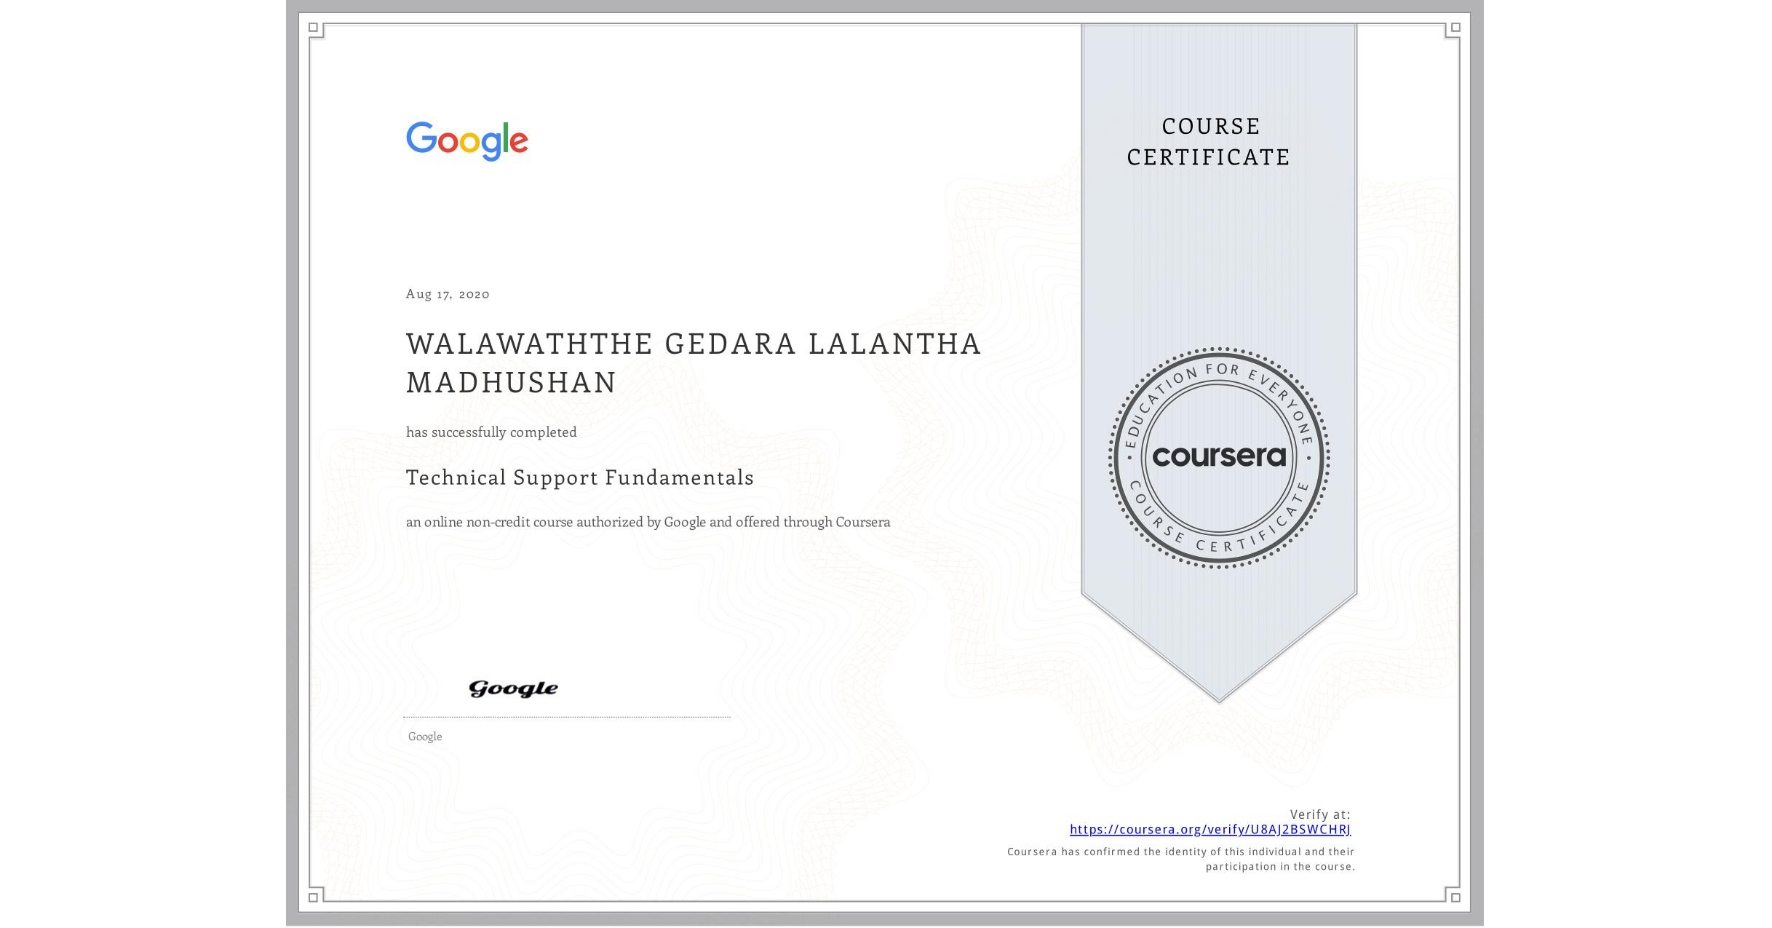 View certificate for  WALAWATHTHE GEDARA LALANTHA MADHUSHAN, Technical Support Fundamentals, an online non-credit course authorized by Google and offered through Coursera